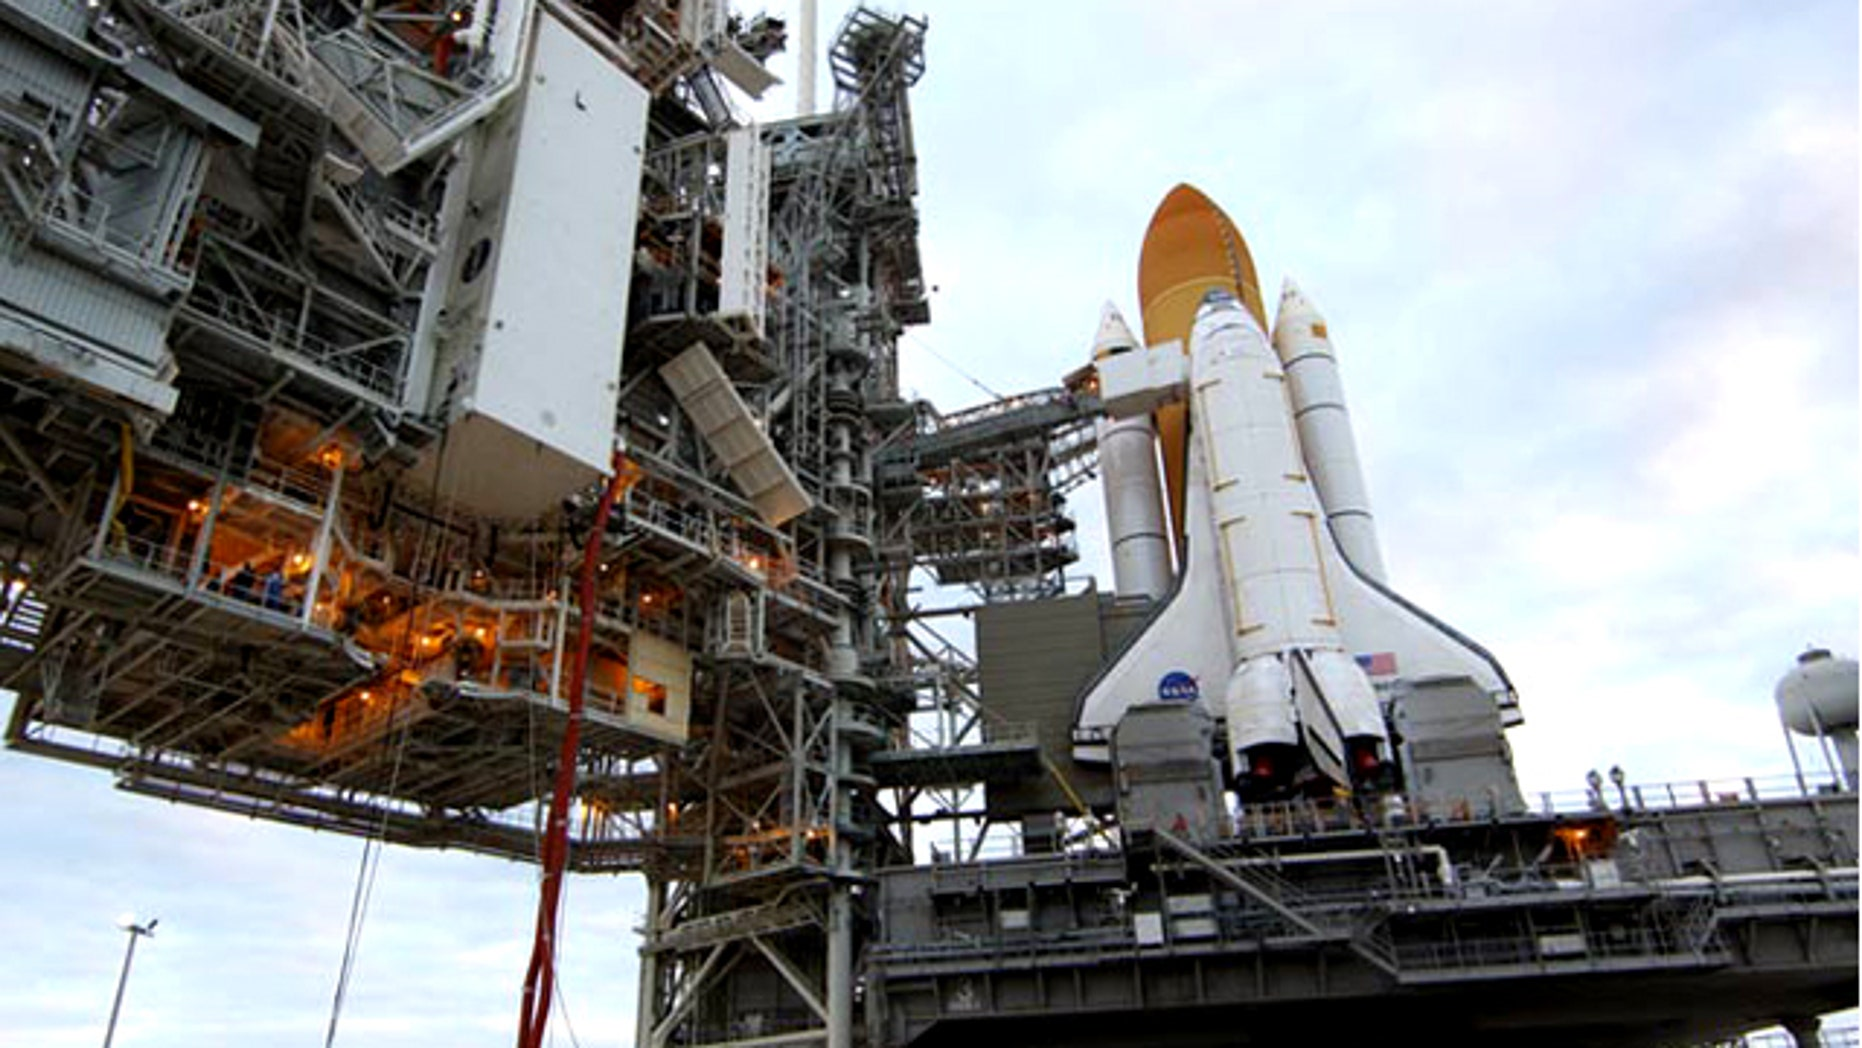 Space shuttle Discovery is prepared for its final launch into space, which is scheduled for Nov. 1, 2010 from the Kennedy Space Center in Cape Canaveral, Fla.